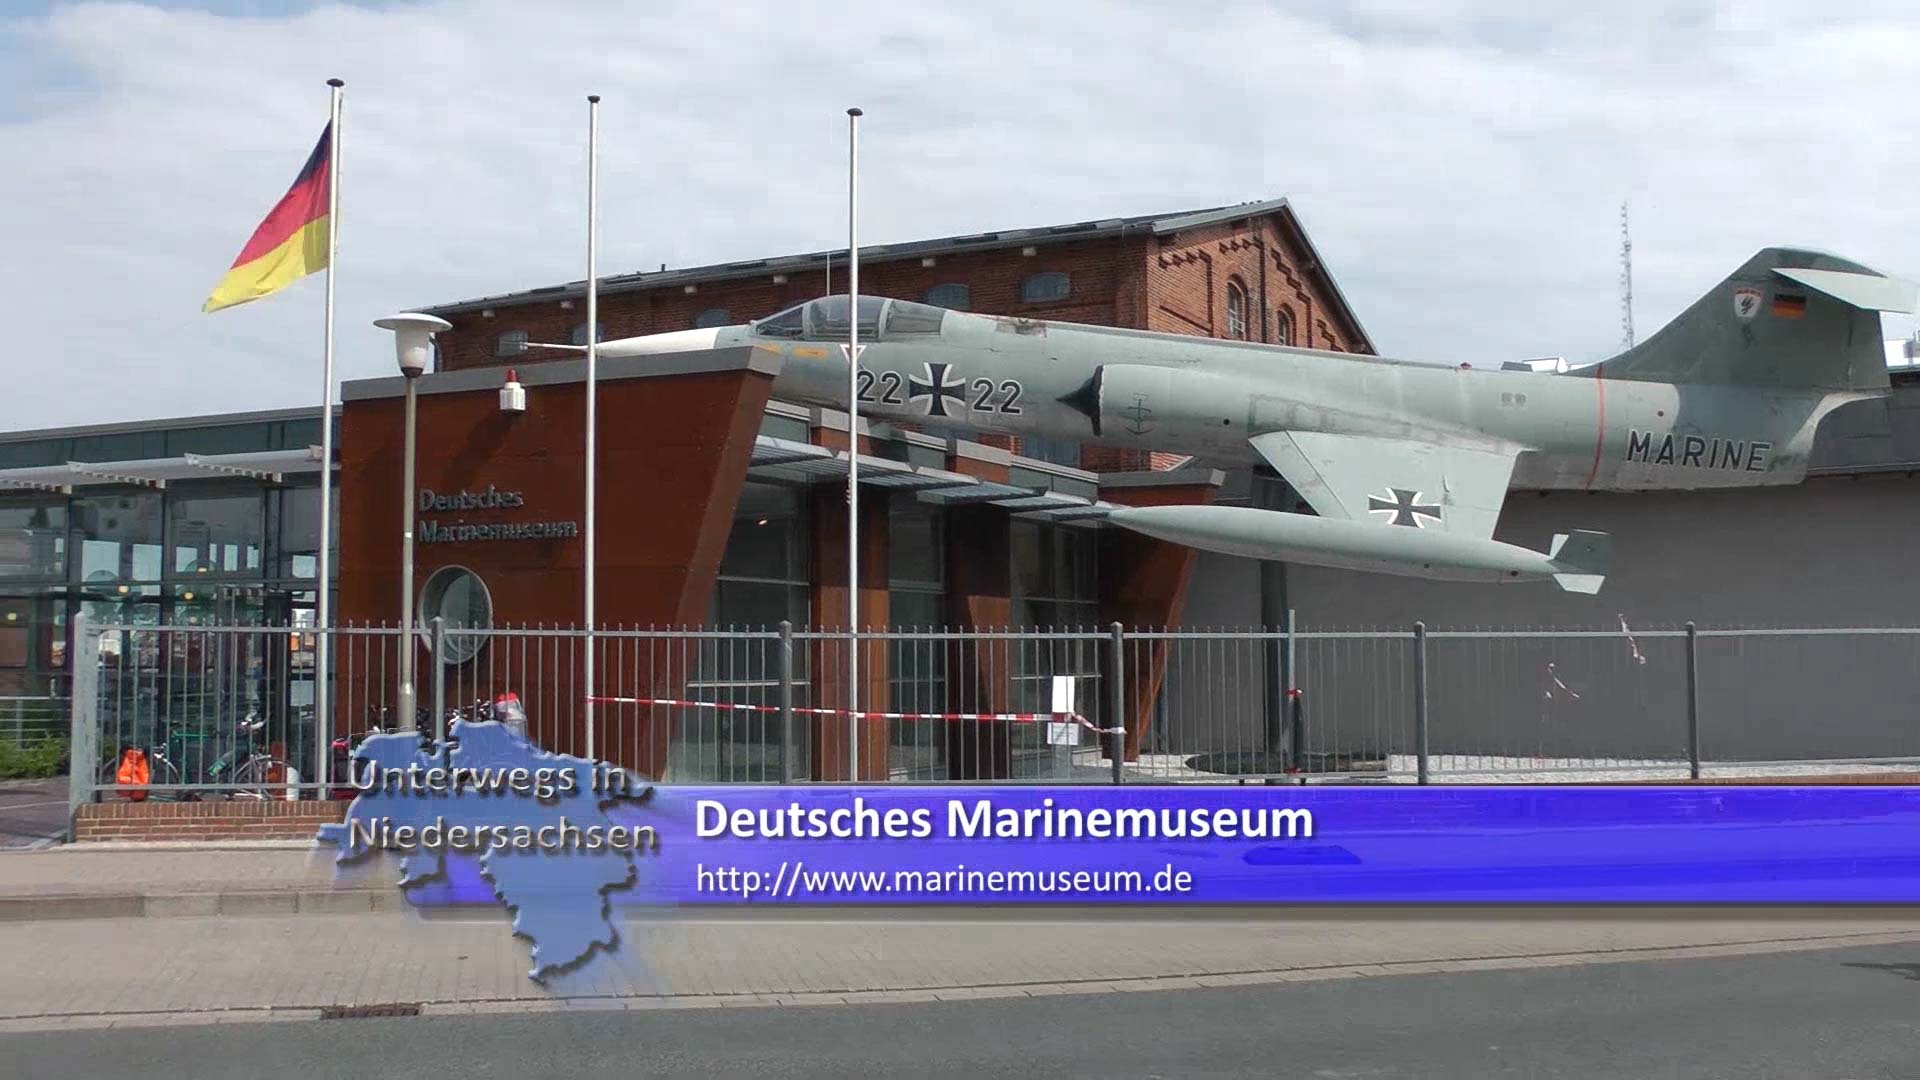 Deutsches Marinemuseum